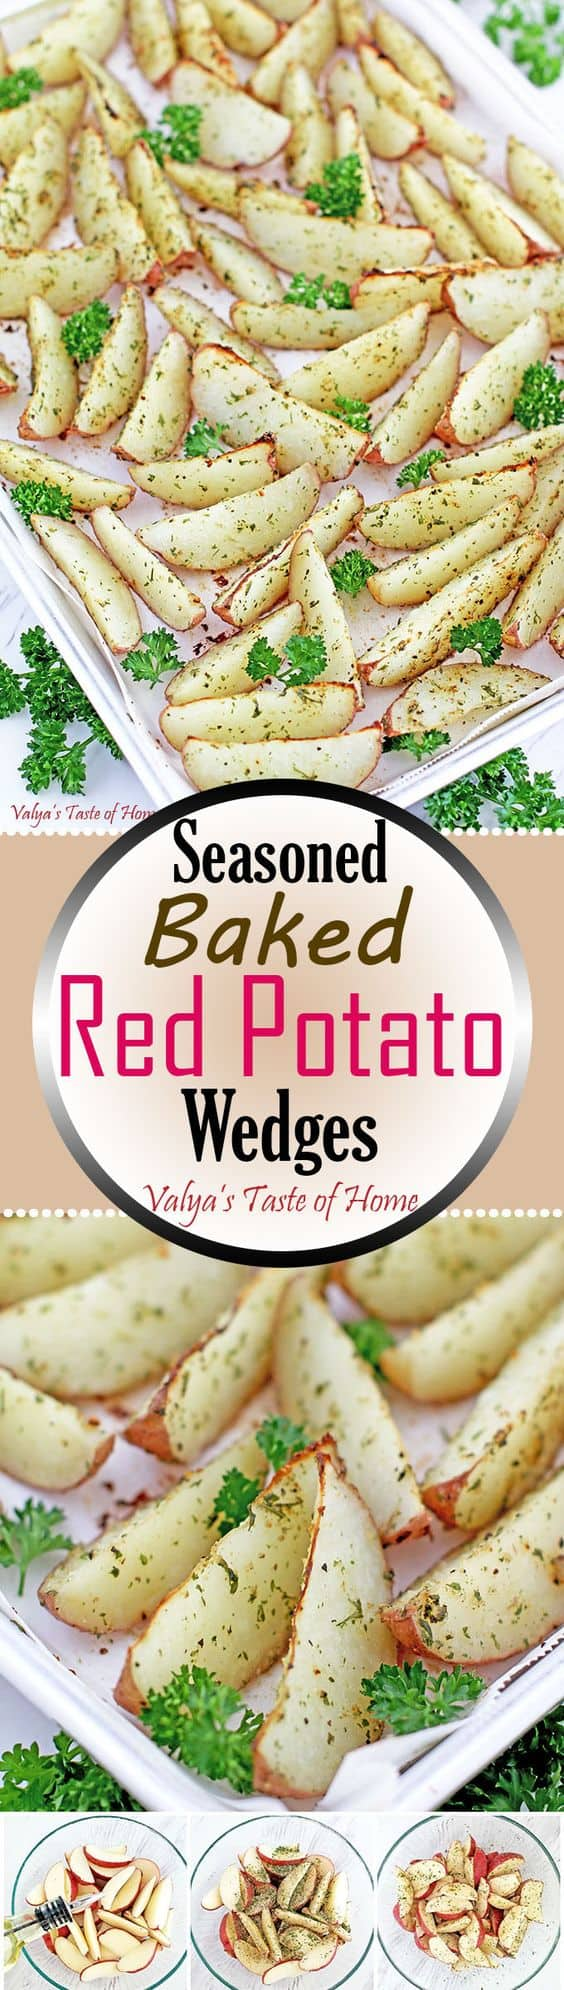 These Seasoned Baked Red Potato Wedges are a little crunchy on the outside, perfectly soft on the inside and so tasty! It makes a perfect side dish, for dipping into ketchup, ranch, or thousand island sauce. #seasonedbakedredpotatoeswedges #potatowedges #bakedpotatowedges #valyastateofhome